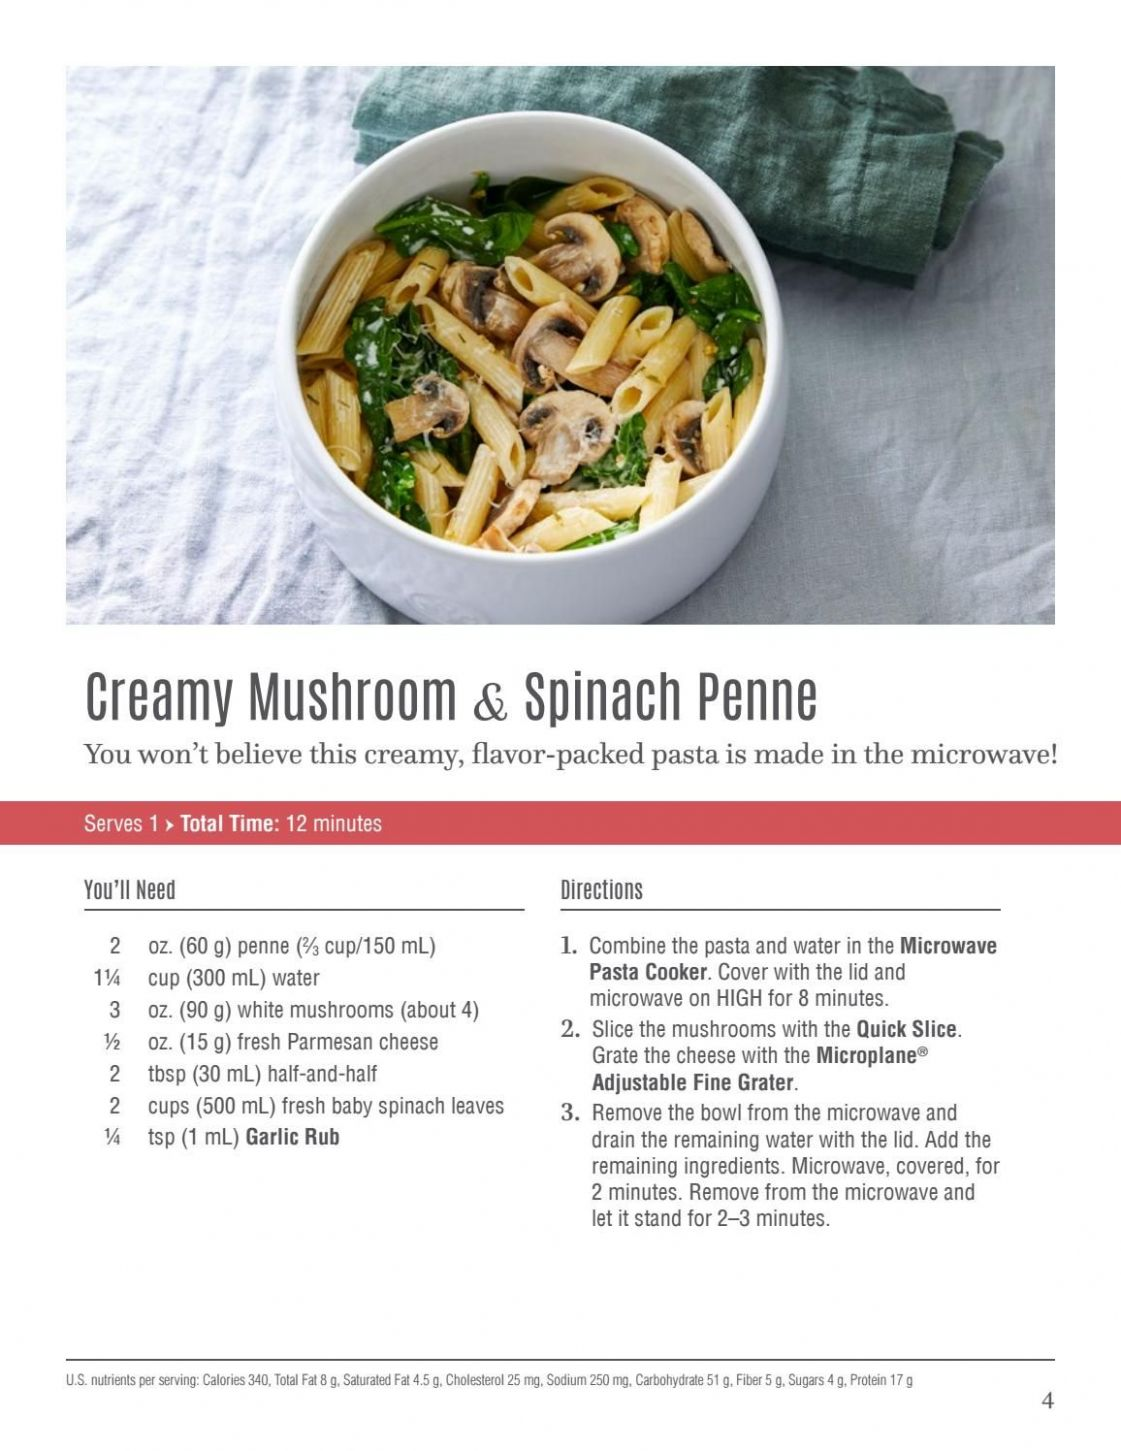 Microwave Pasta Cooker Recipes eBook in 11 | Pampered chef egg ...